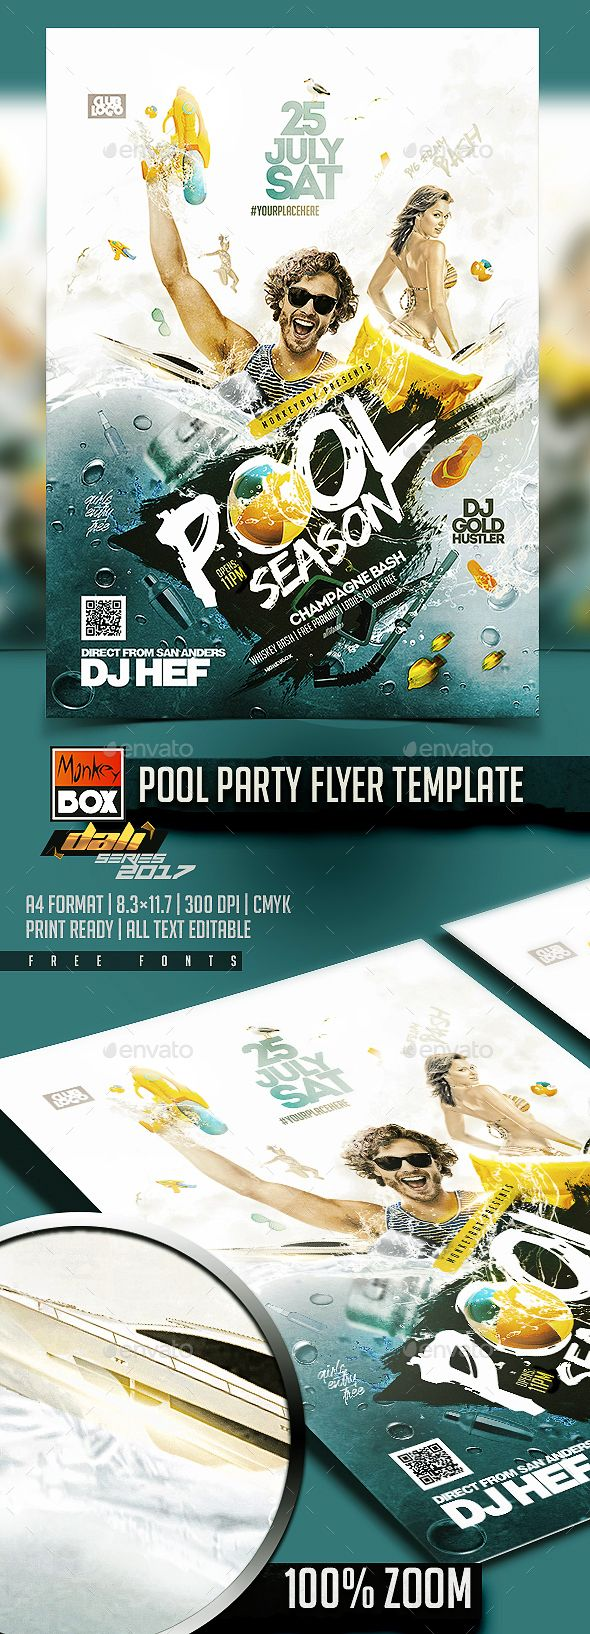 Pool party flyer template party flyer flyer template and template saigontimesfo